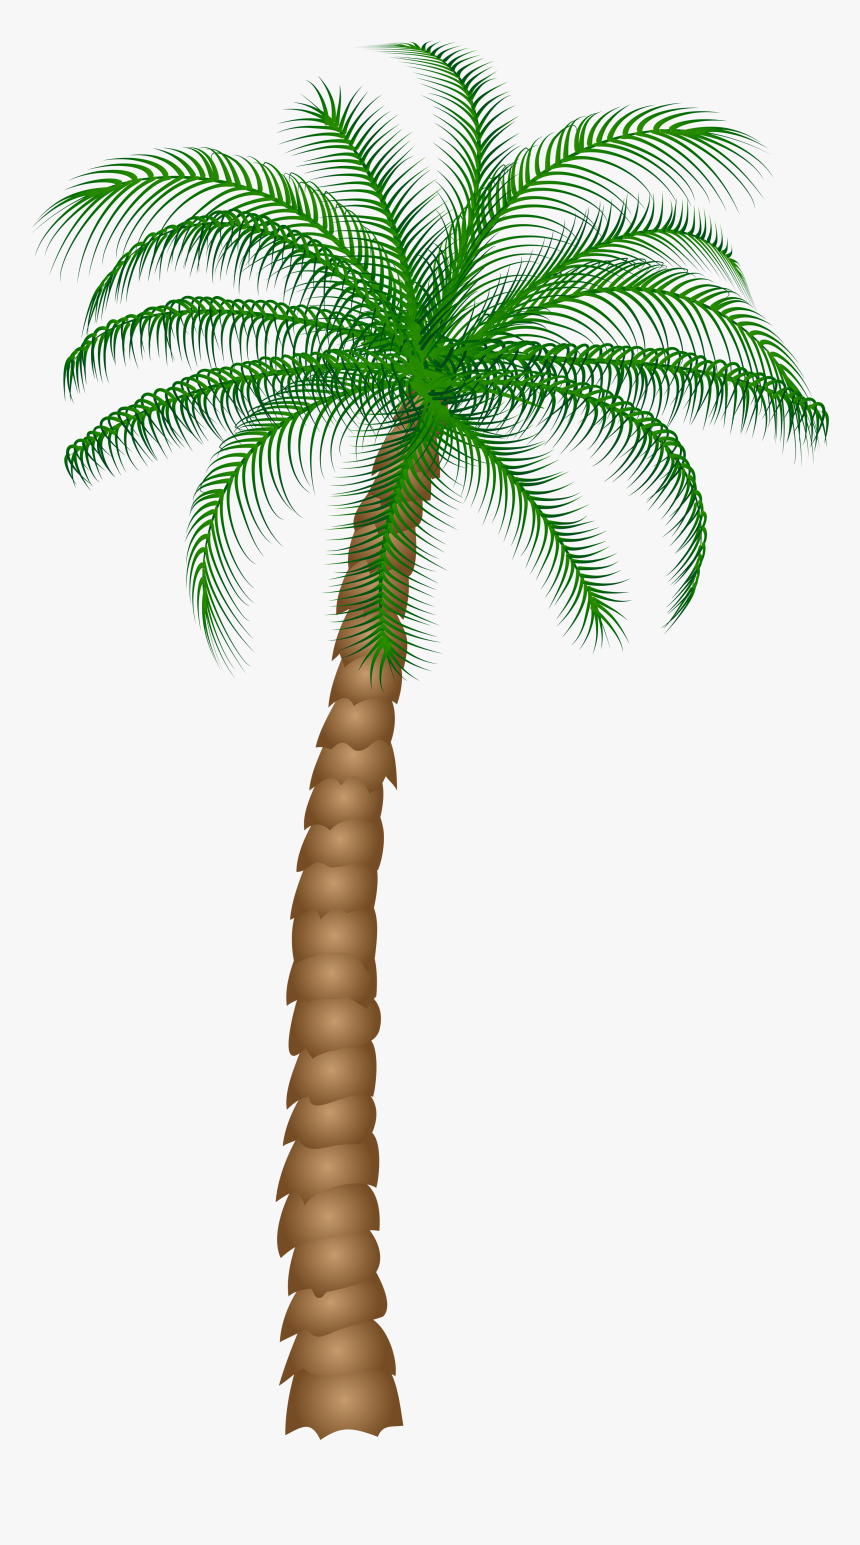 Date Palm Fruit Tree Clipart - Palm Tree Transparent Background, HD Png Download, Free Download